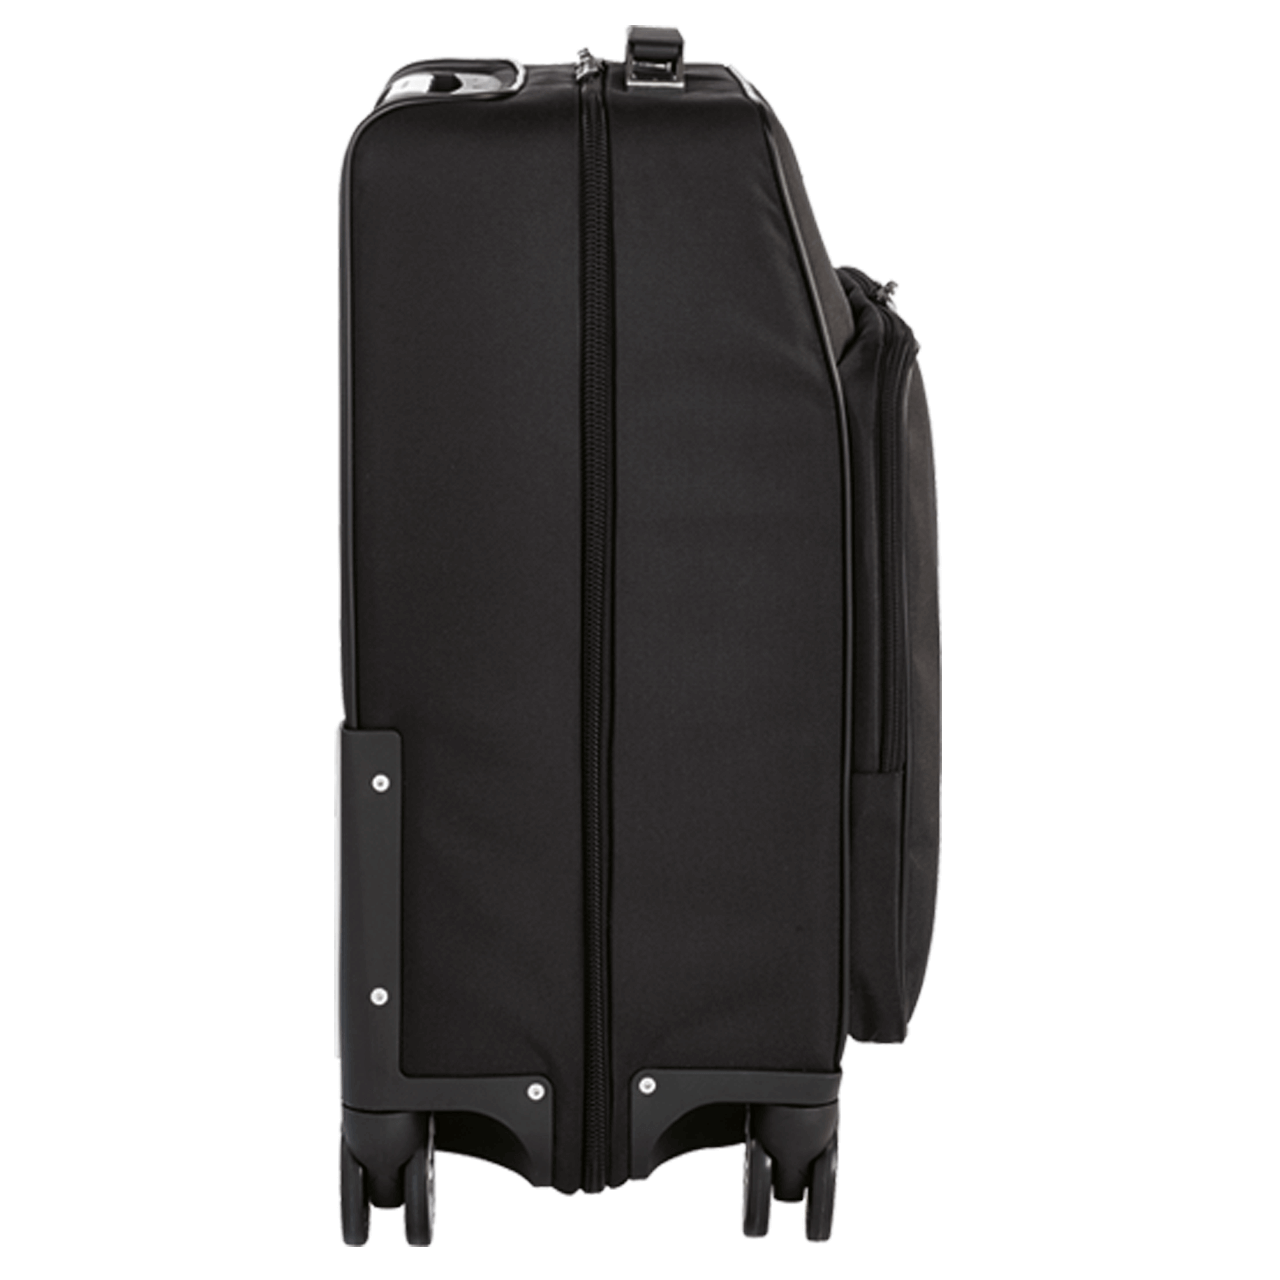 ROADSTER SOFTCASE SERIES TROLLEY 670 - фото 3